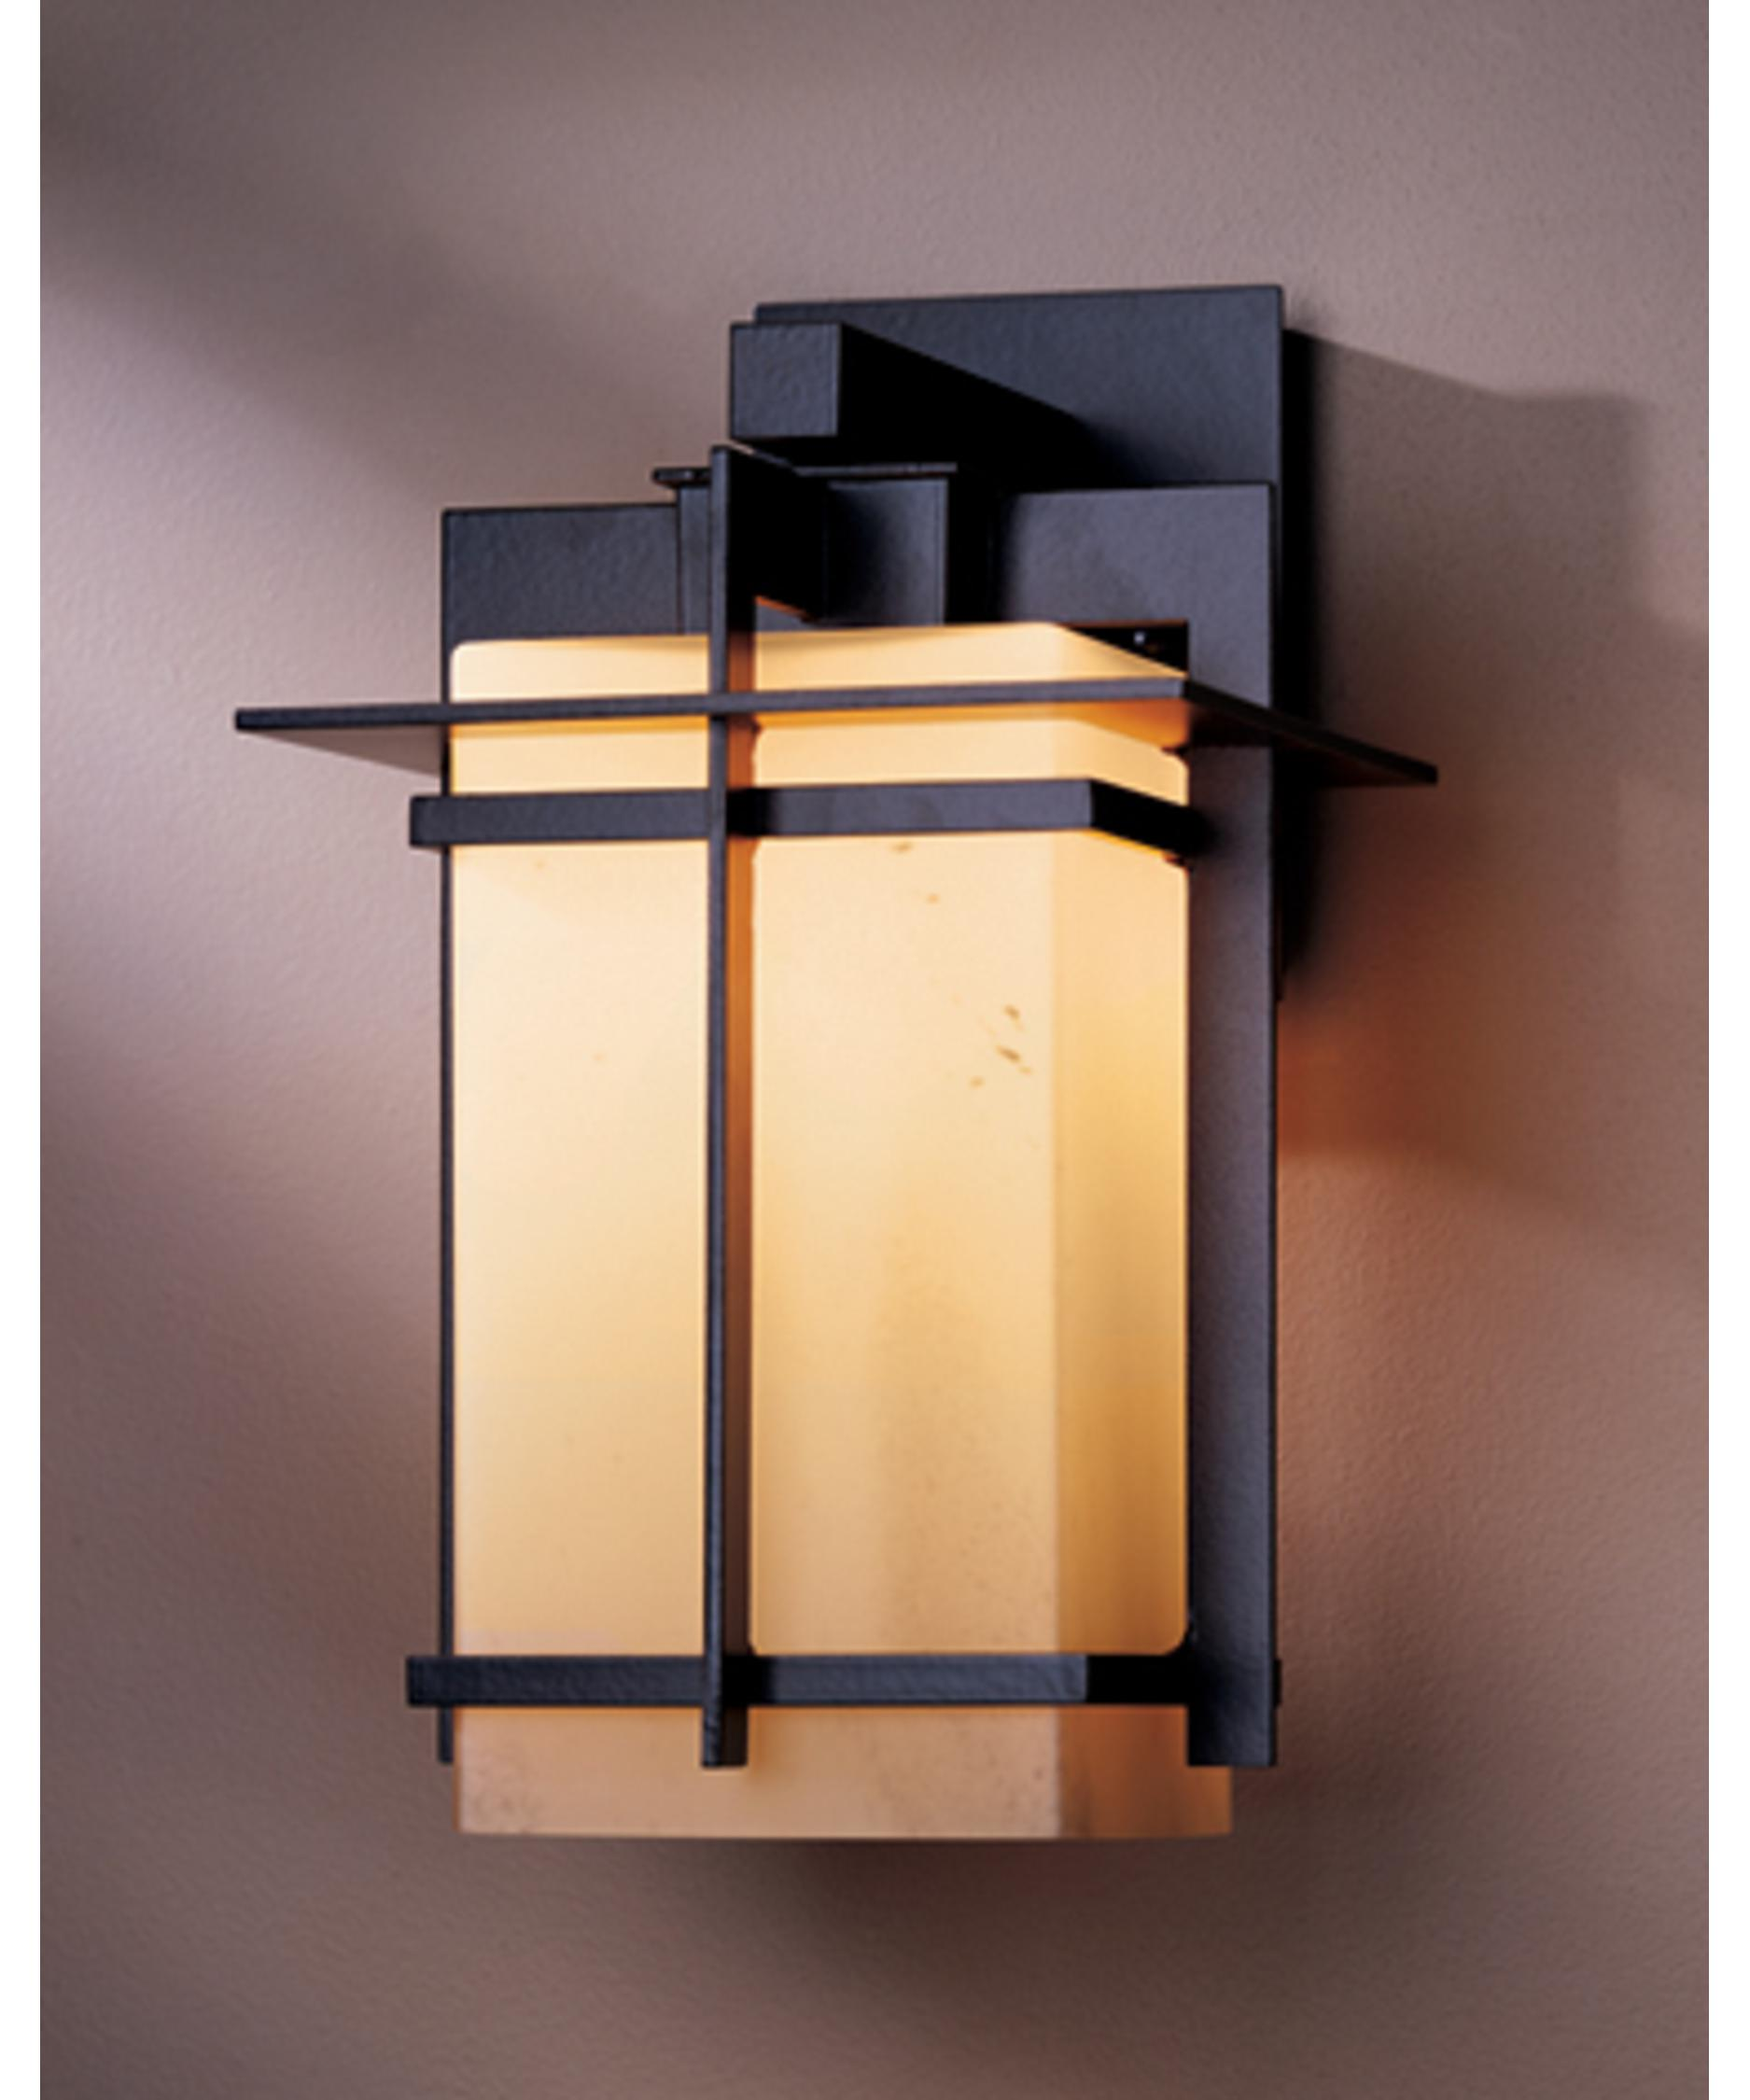 Get 25 Sorts of Possibilities with Modern outdoor lights ... on Exterior Wall Sconce Light Fixtures id=46080